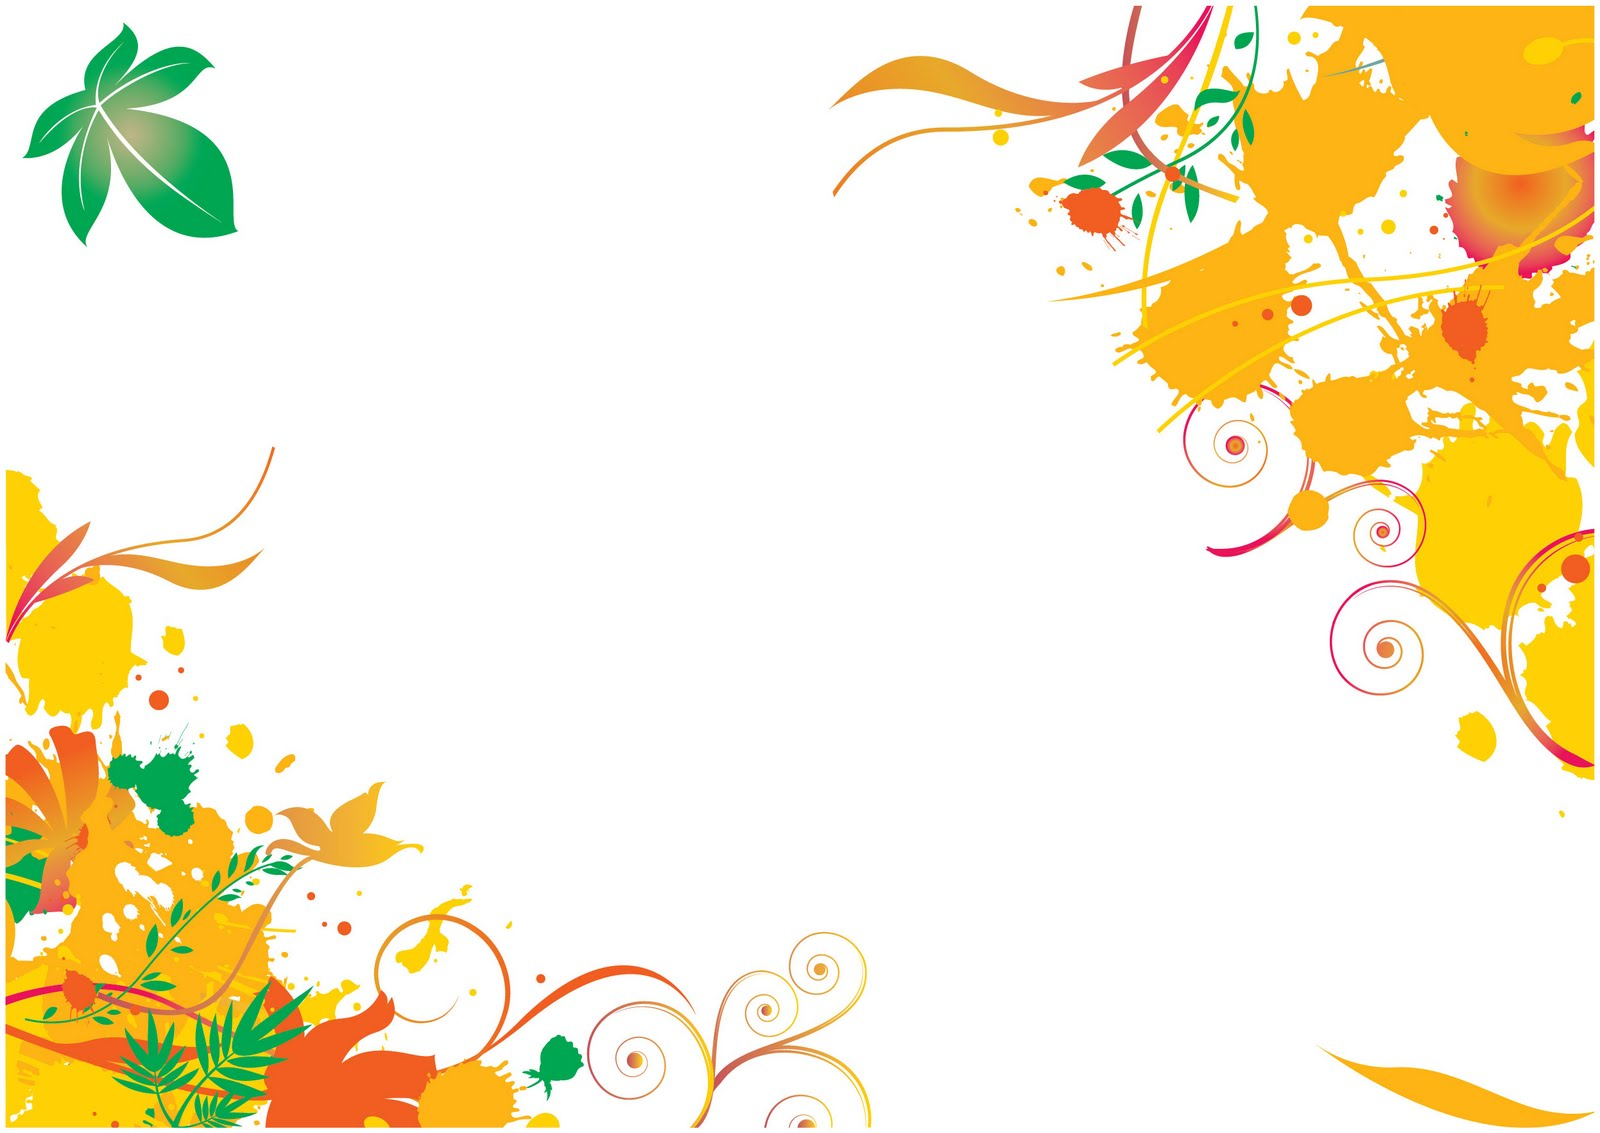 Wedding Invitation Backgrounds: Welcome To Fashion Forum: Wedding Invitation Background